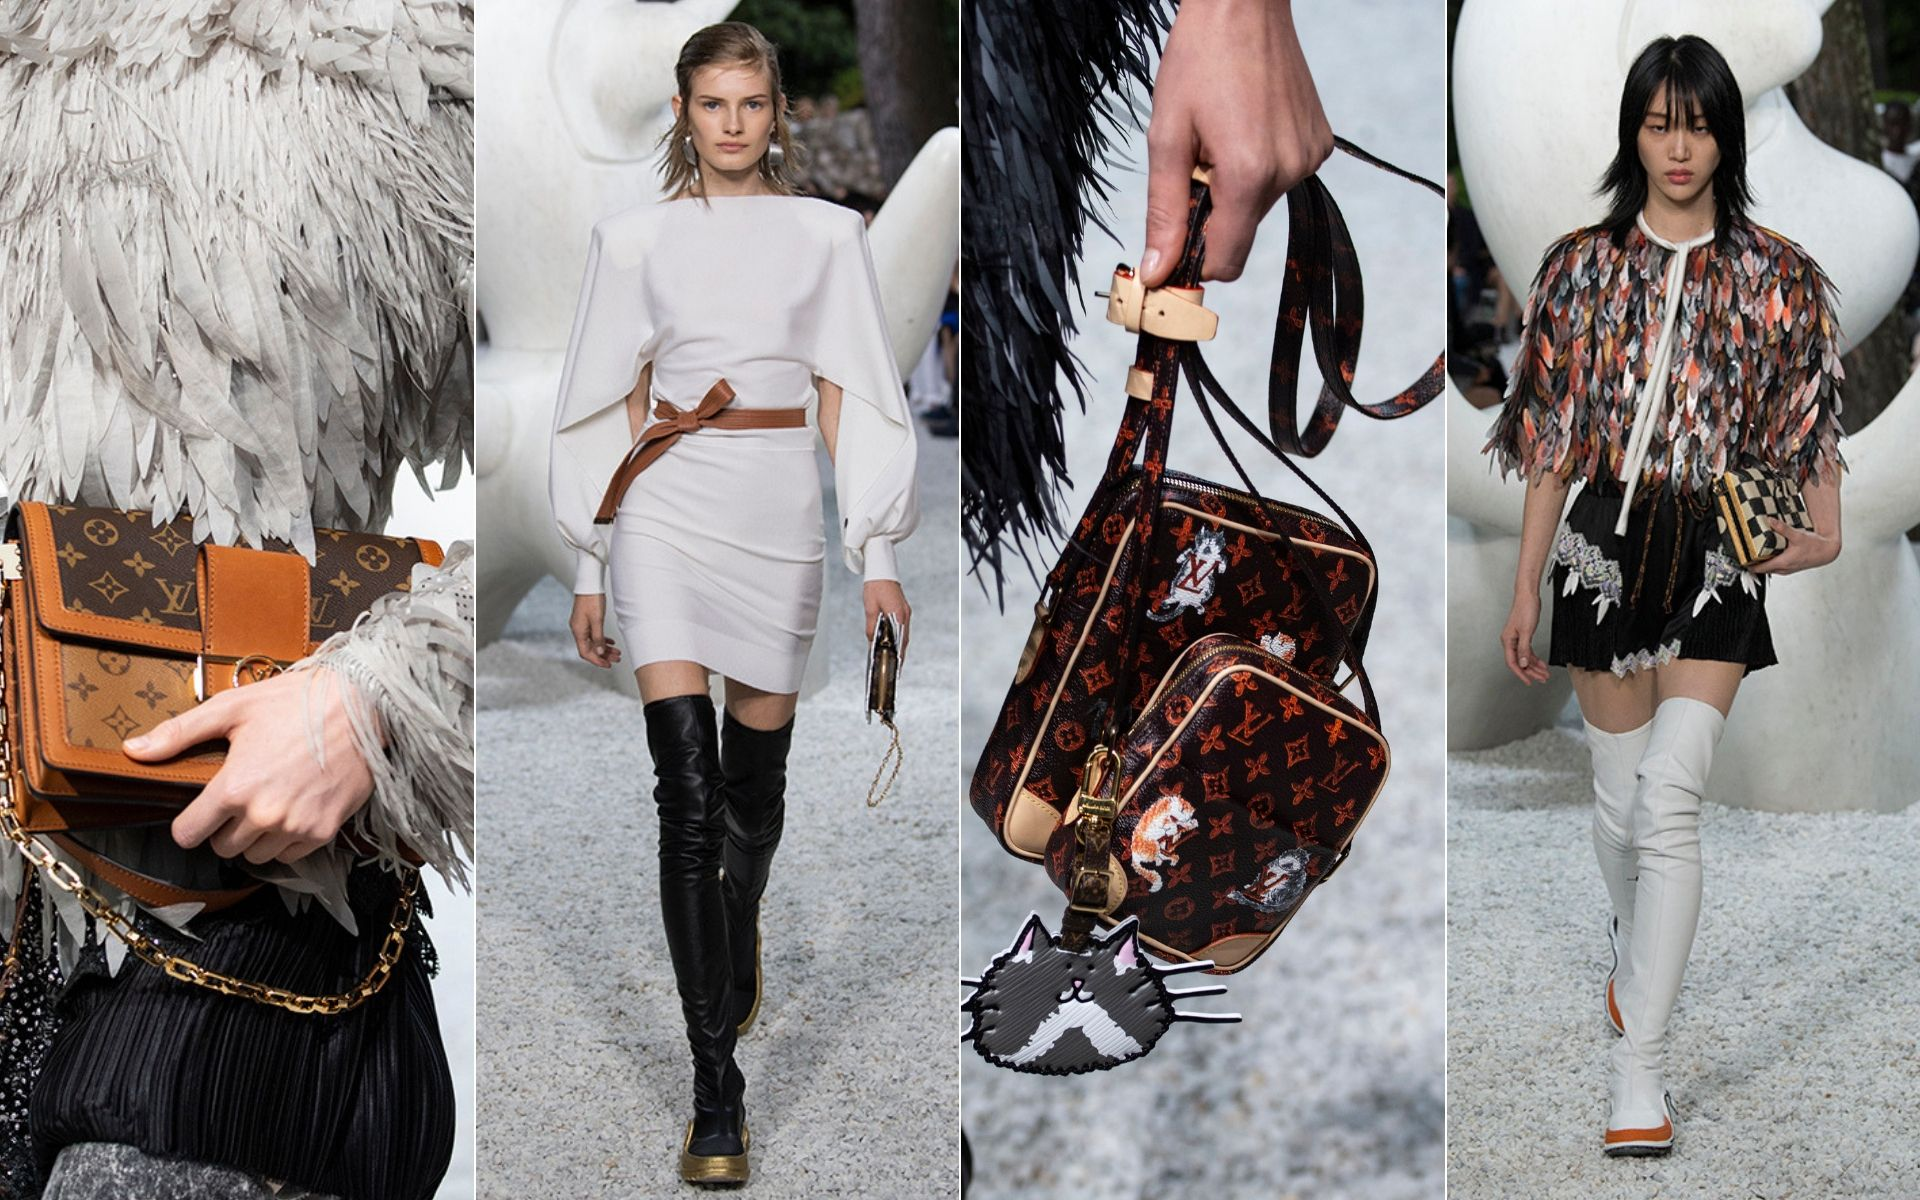 d9558b9eec6 Artsy Pieces We Love From This Modernist Louis Vuitton Cruise Collection